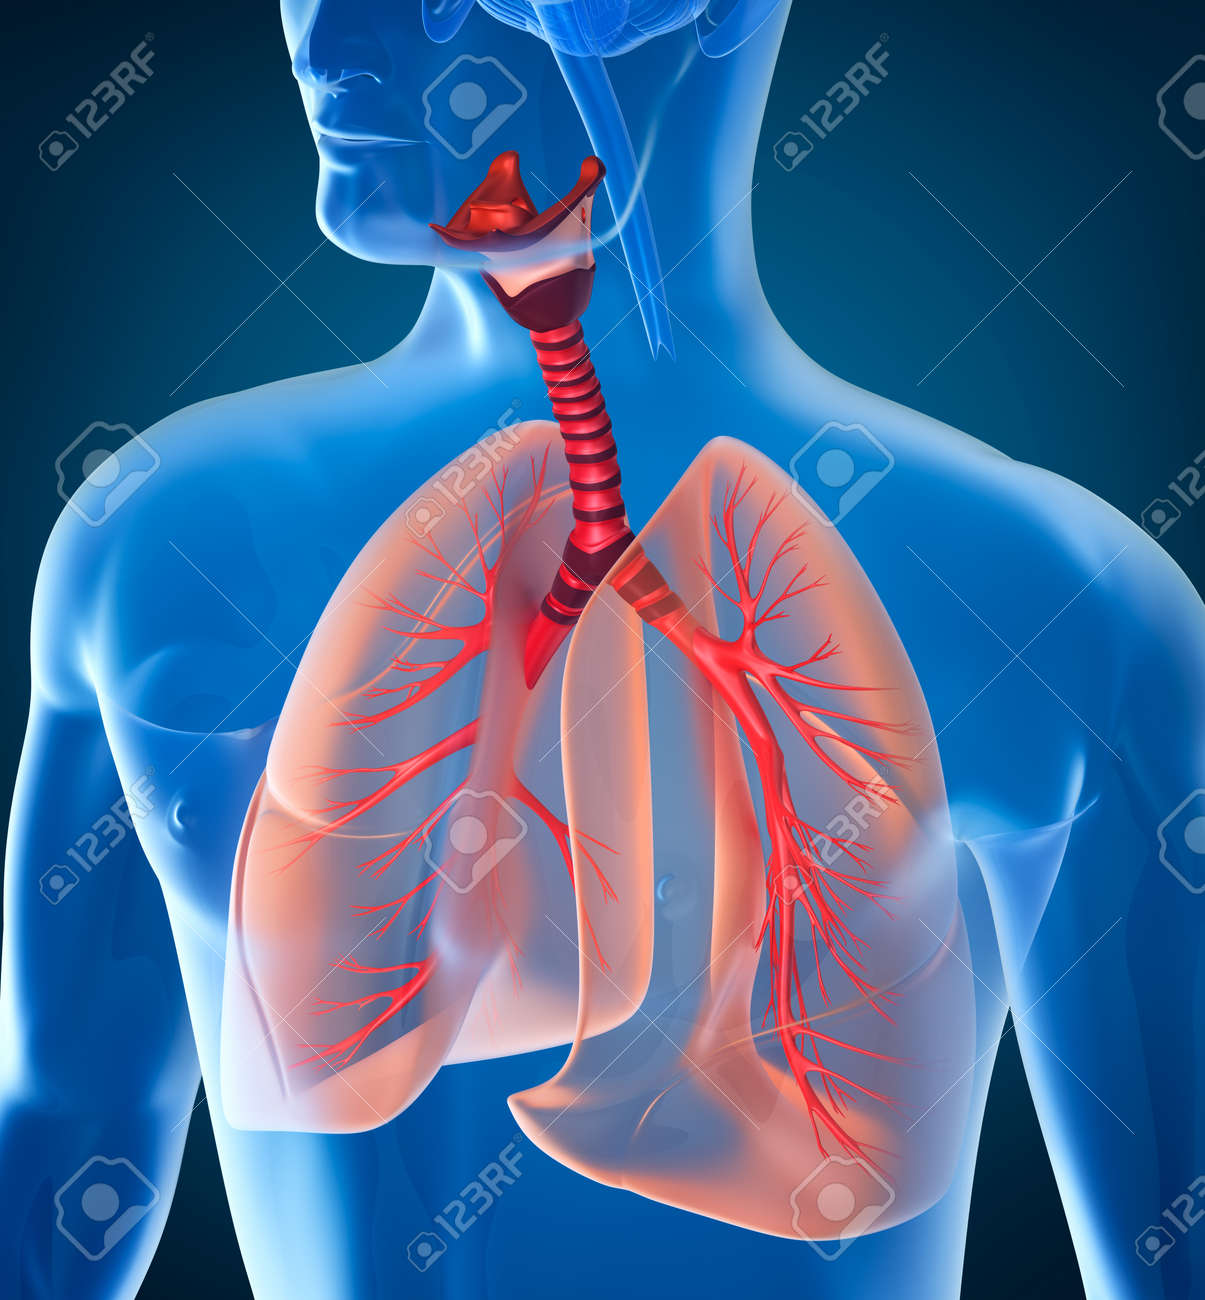 Anatomy Of Human Respiratory System Stock Photo, Picture And Royalty ...